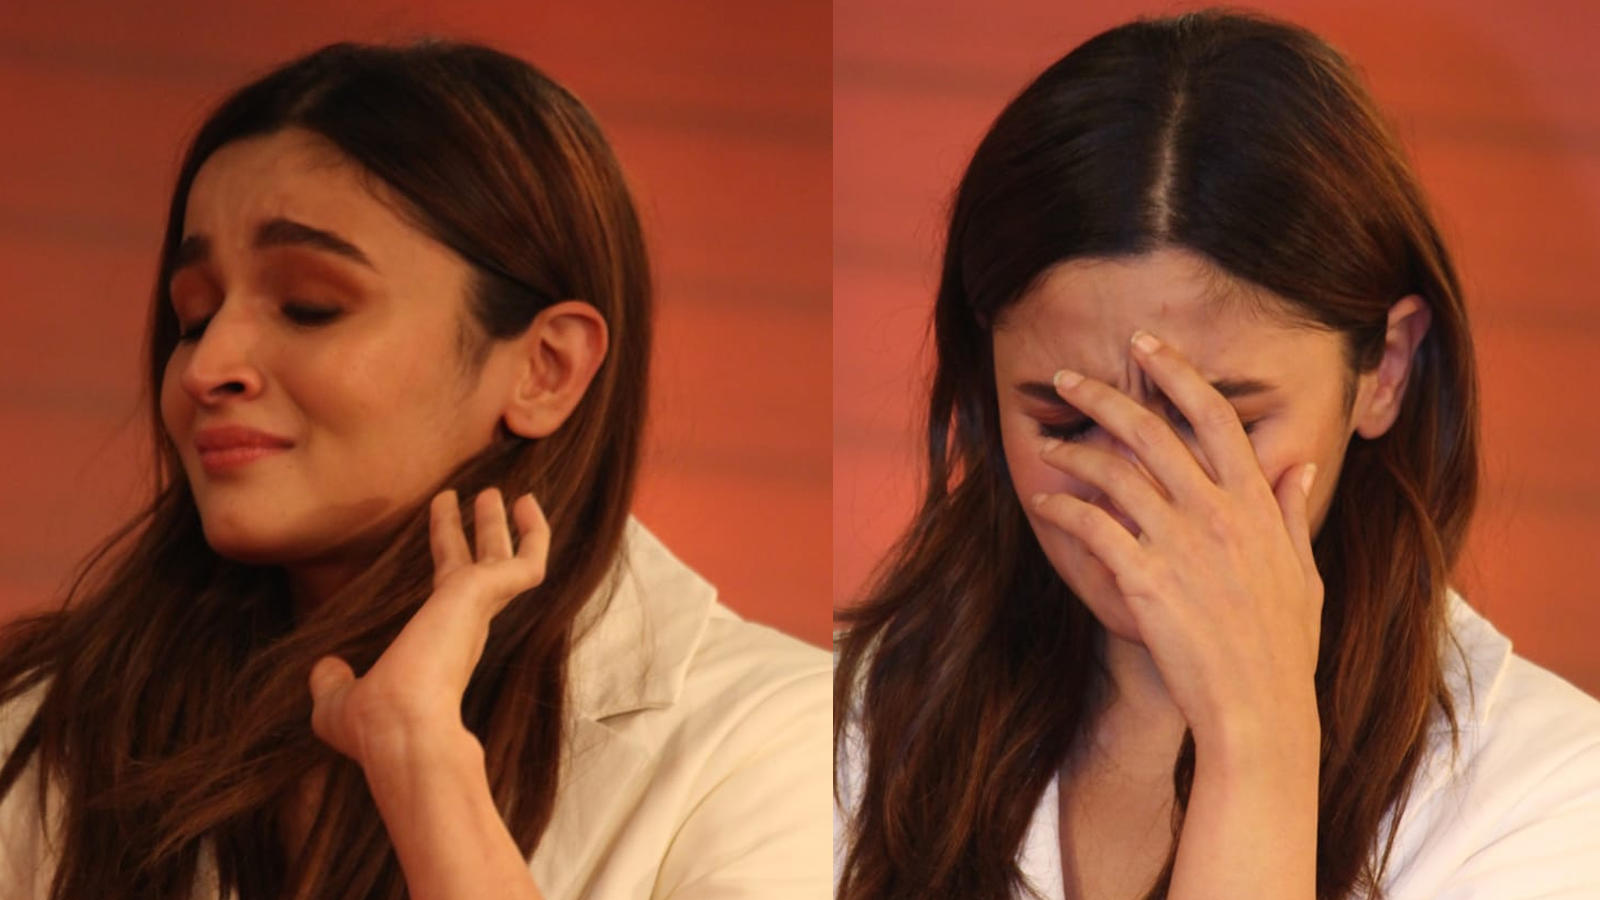 Alia Bhatt breaks down in tears while talking about sister Shaheen Bhatt's battle with depression